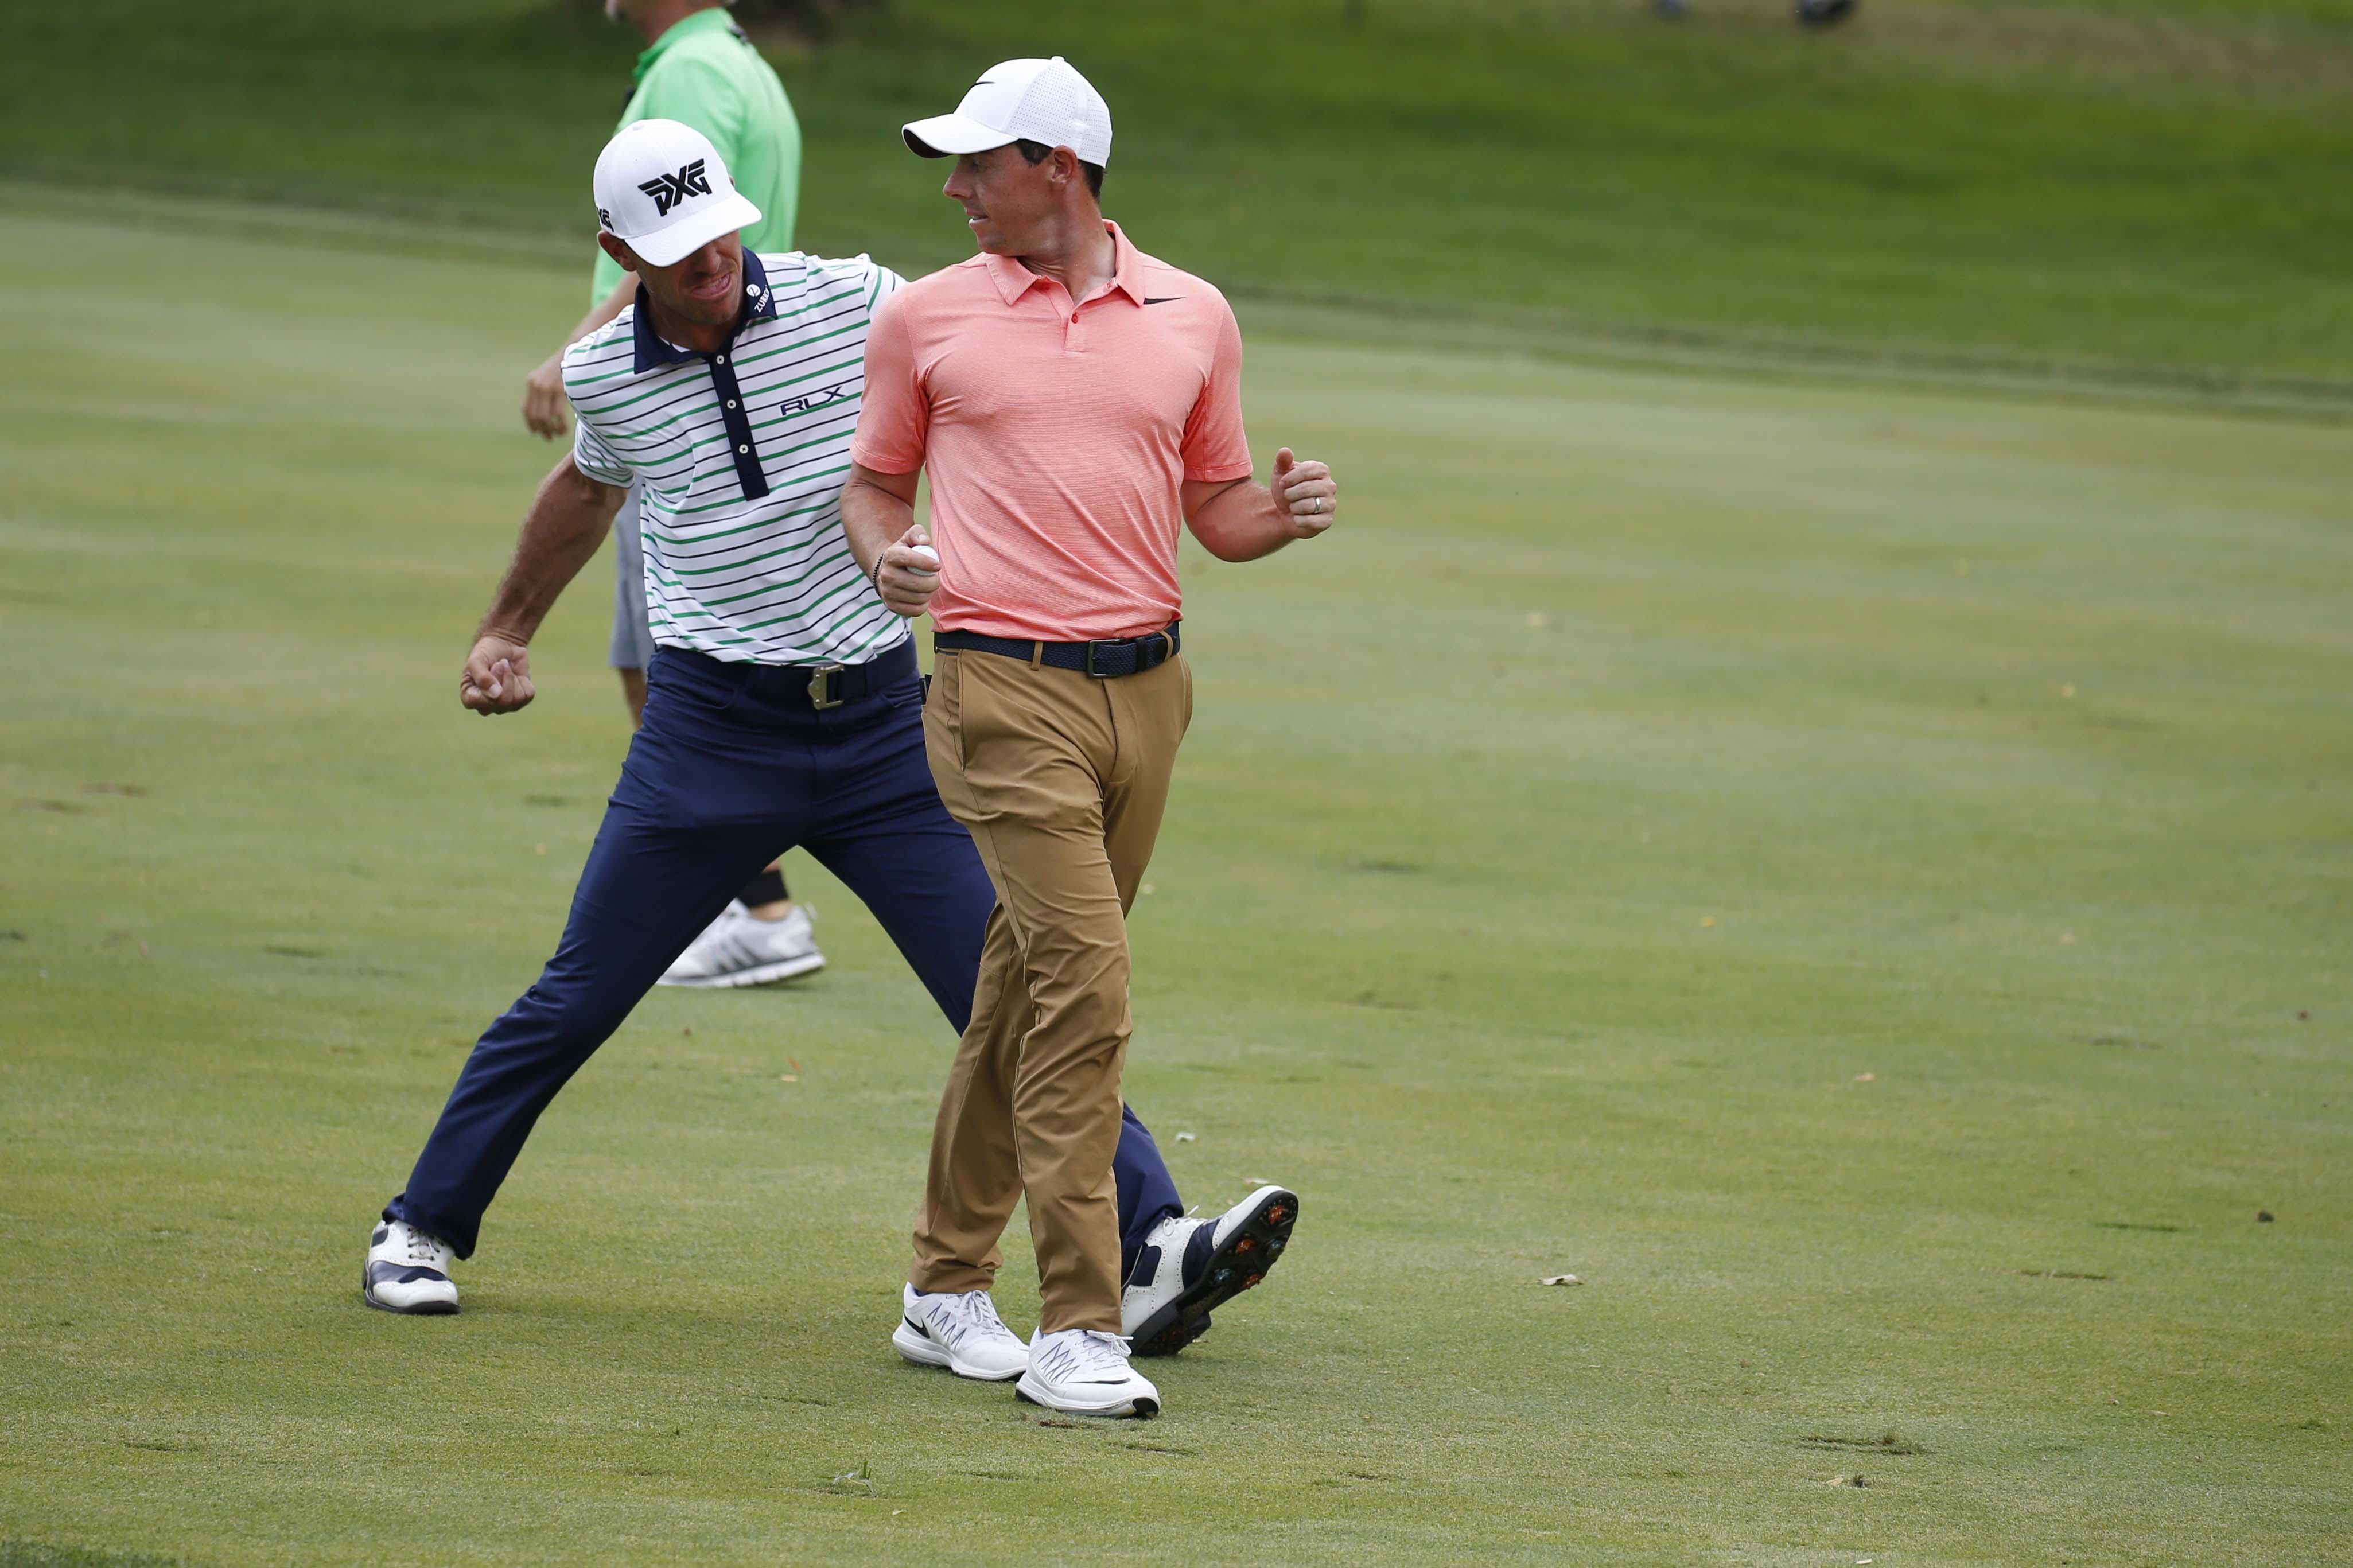 Billy Horschel and Rory McIlroy